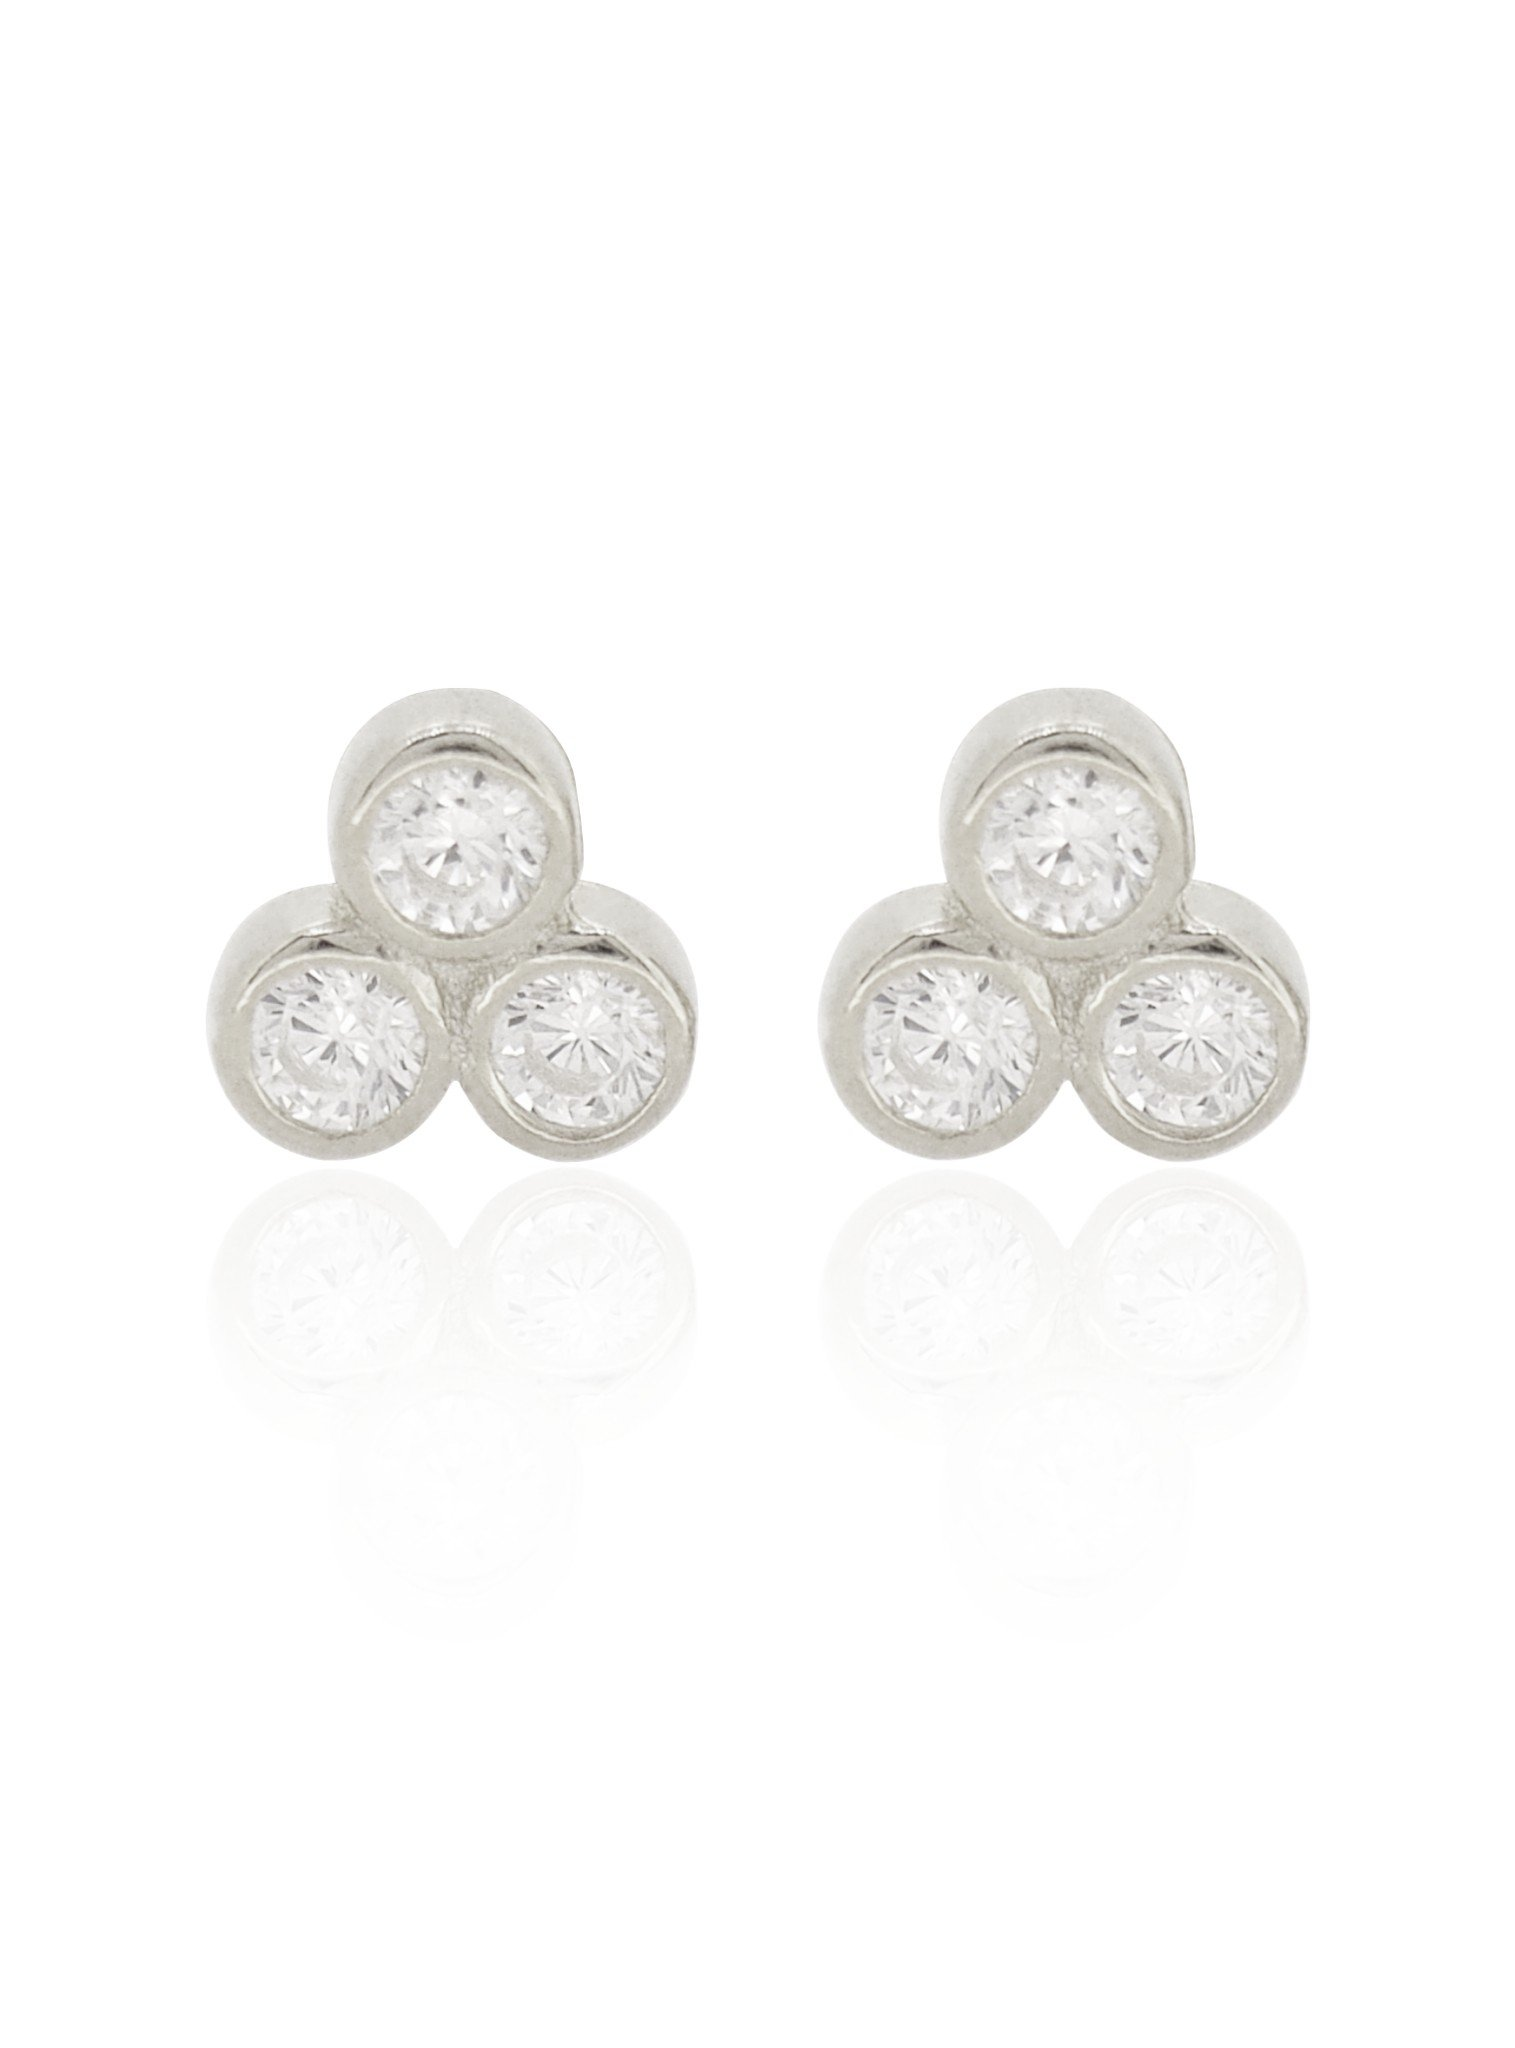 Selena Triple CZ Stud Earrings in Silver